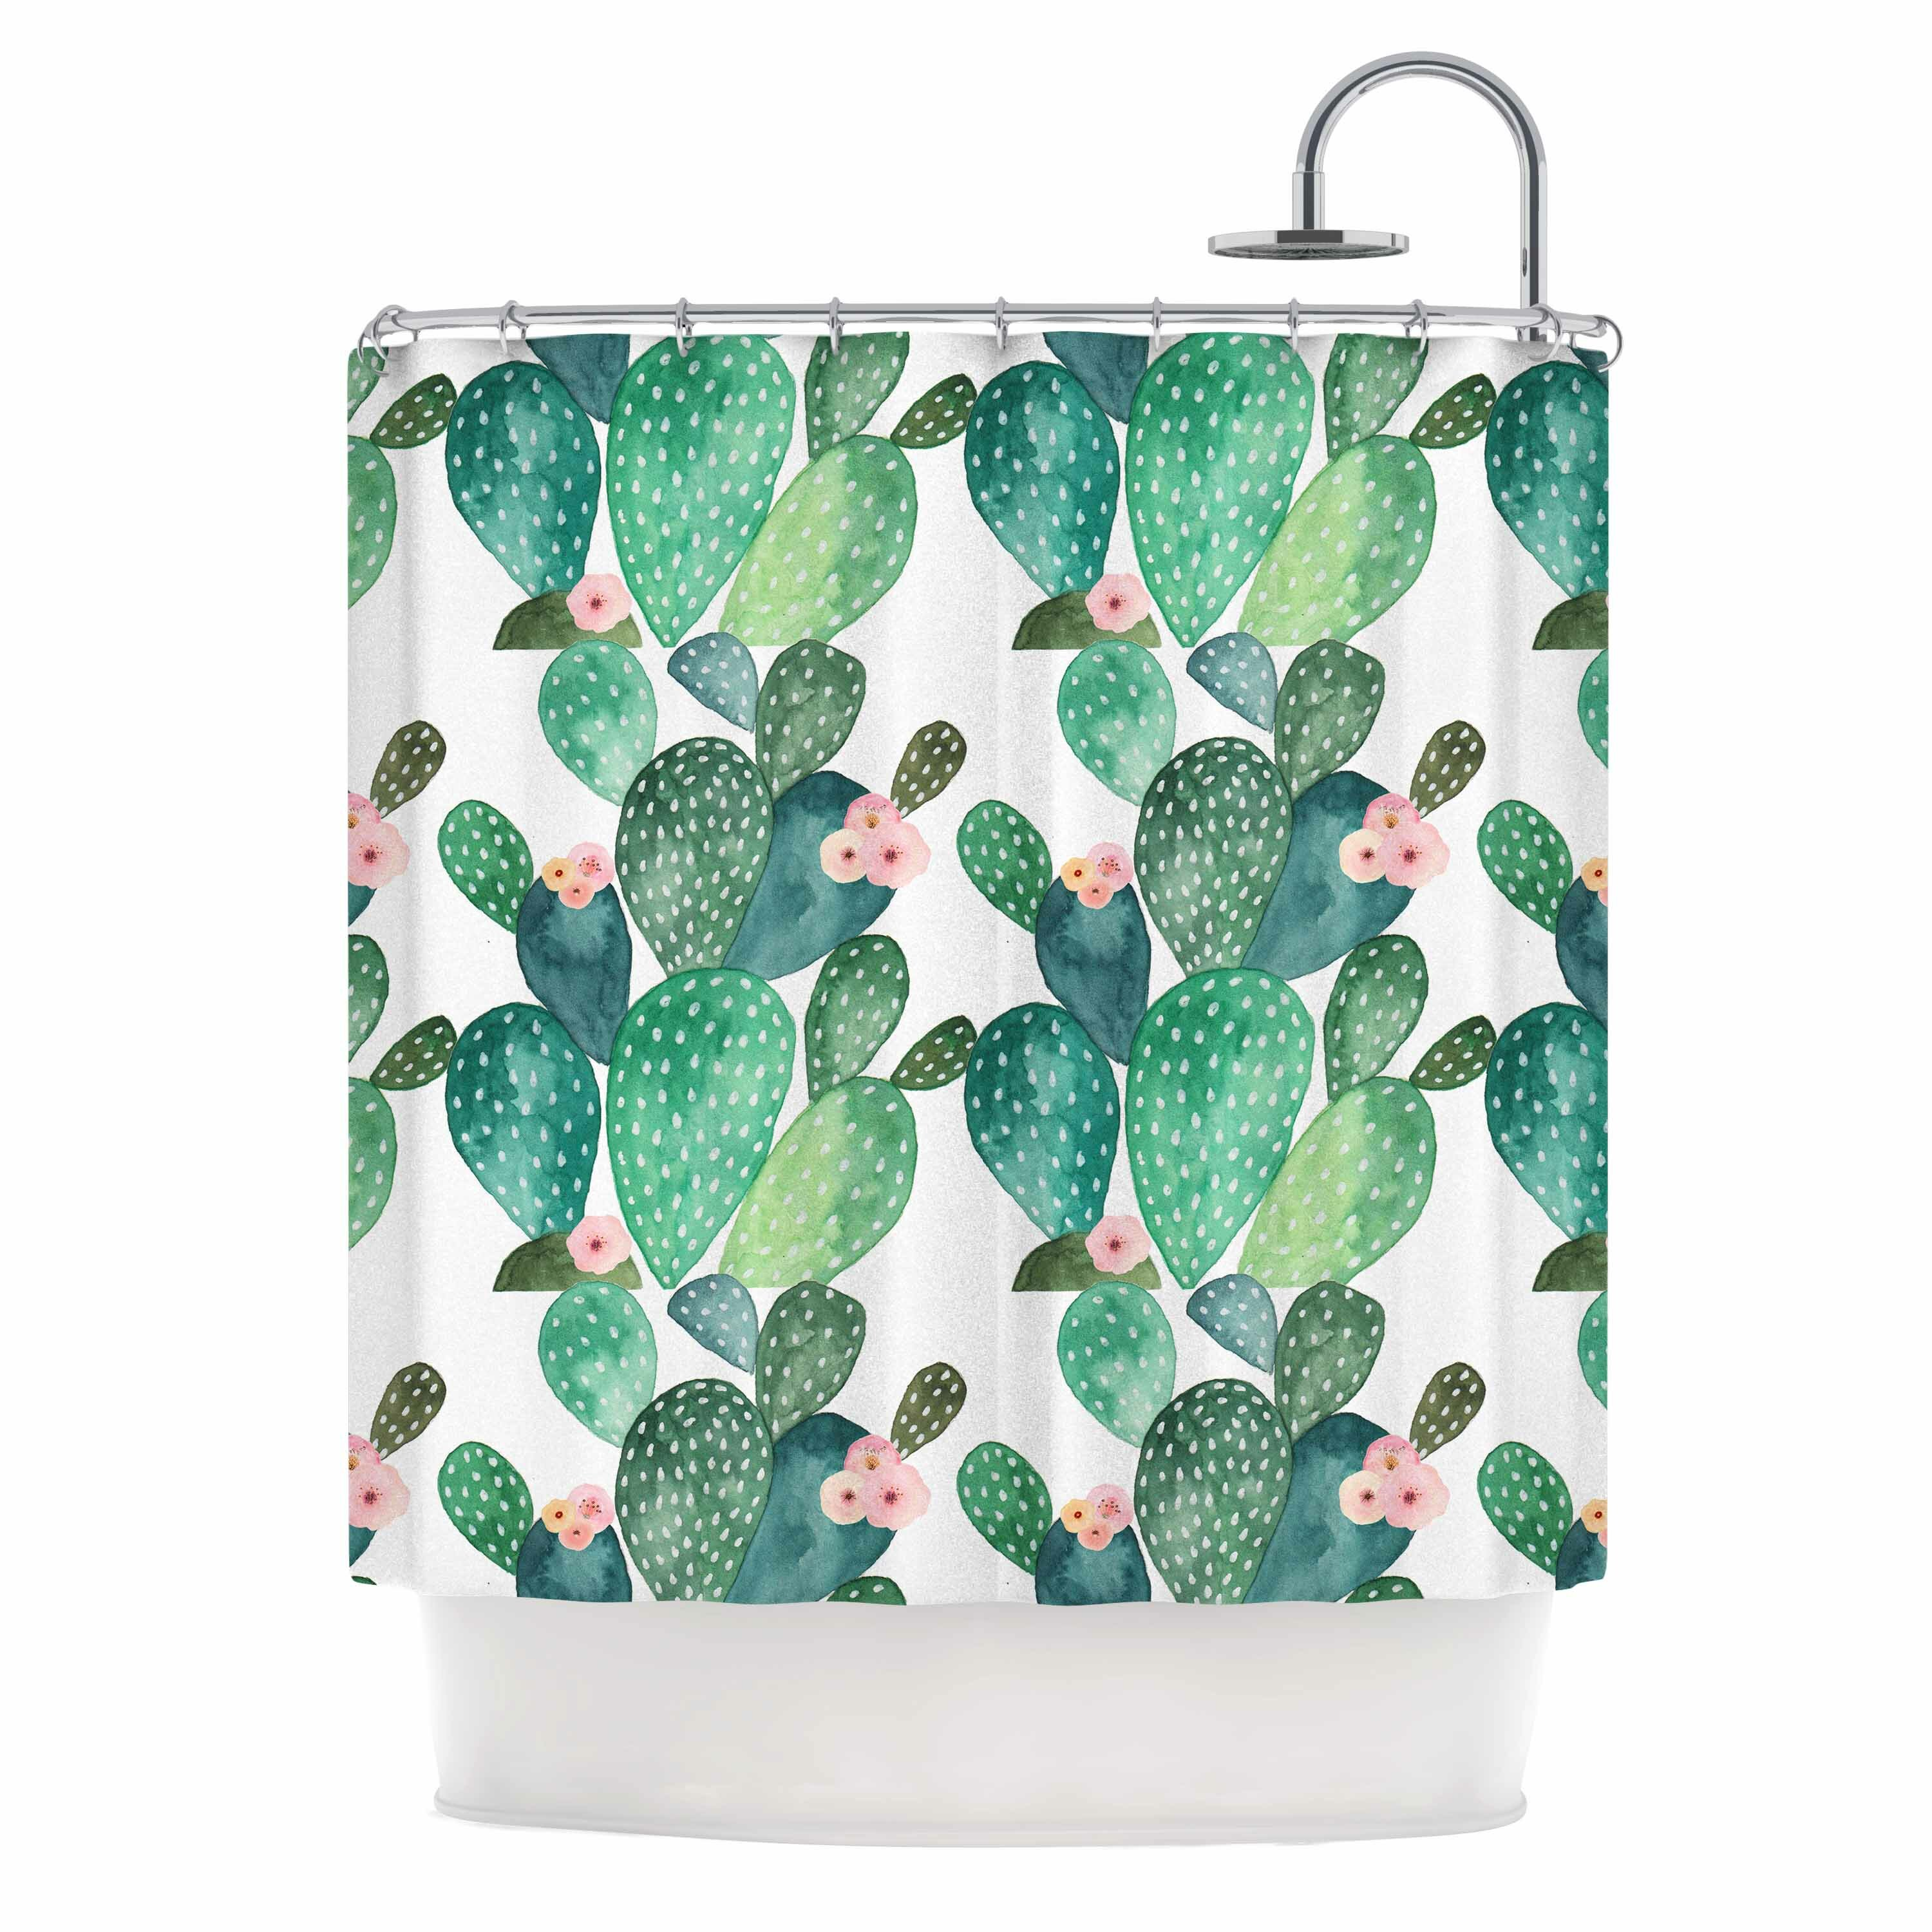 East Urban Home Cactus Shower Curtain